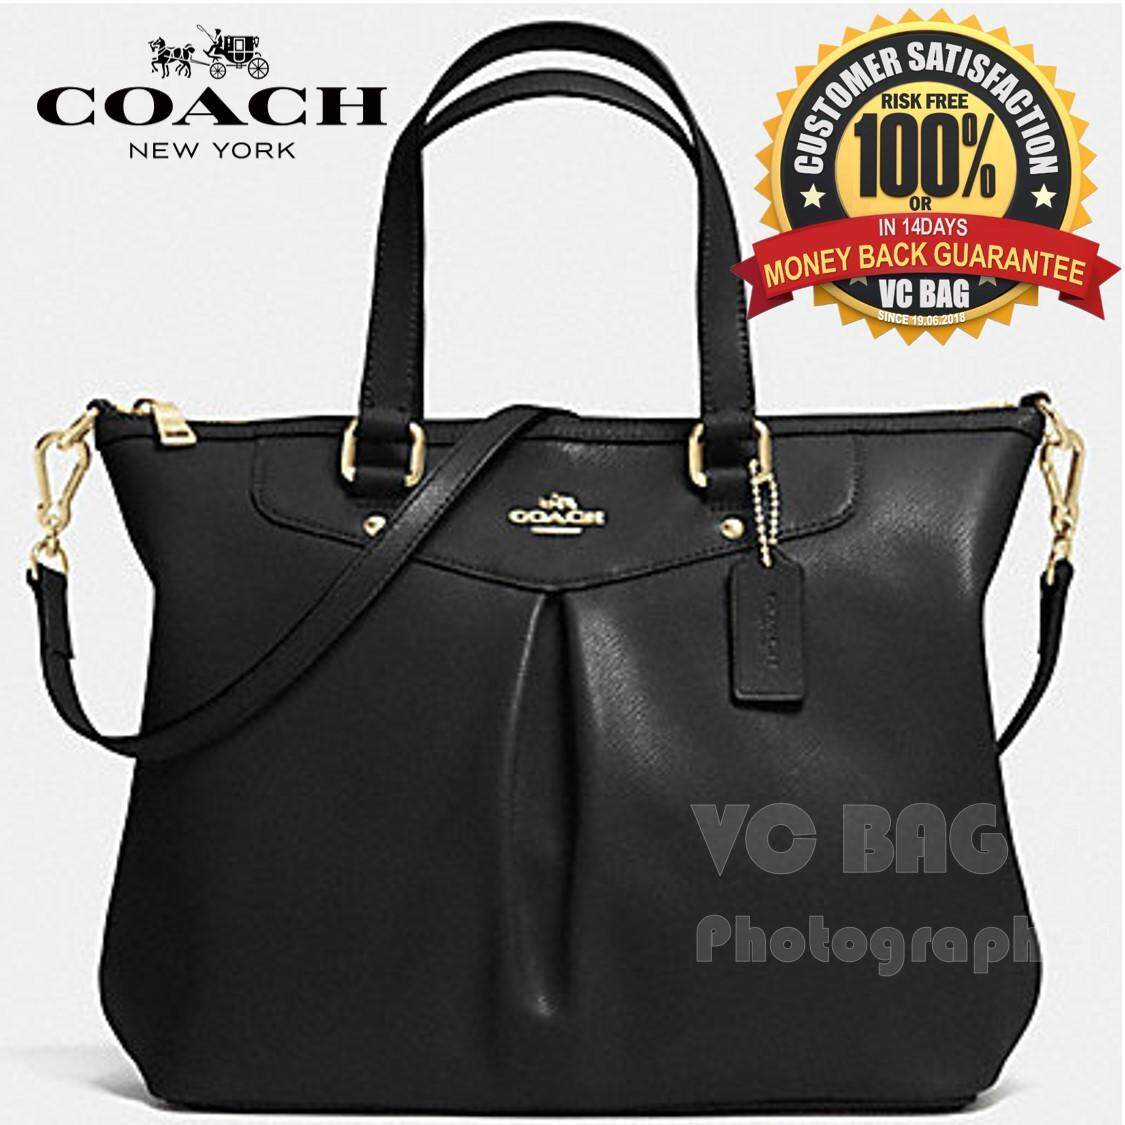 Coach Bags For Women for the Best Price in Malaysia 773b65eefbd80